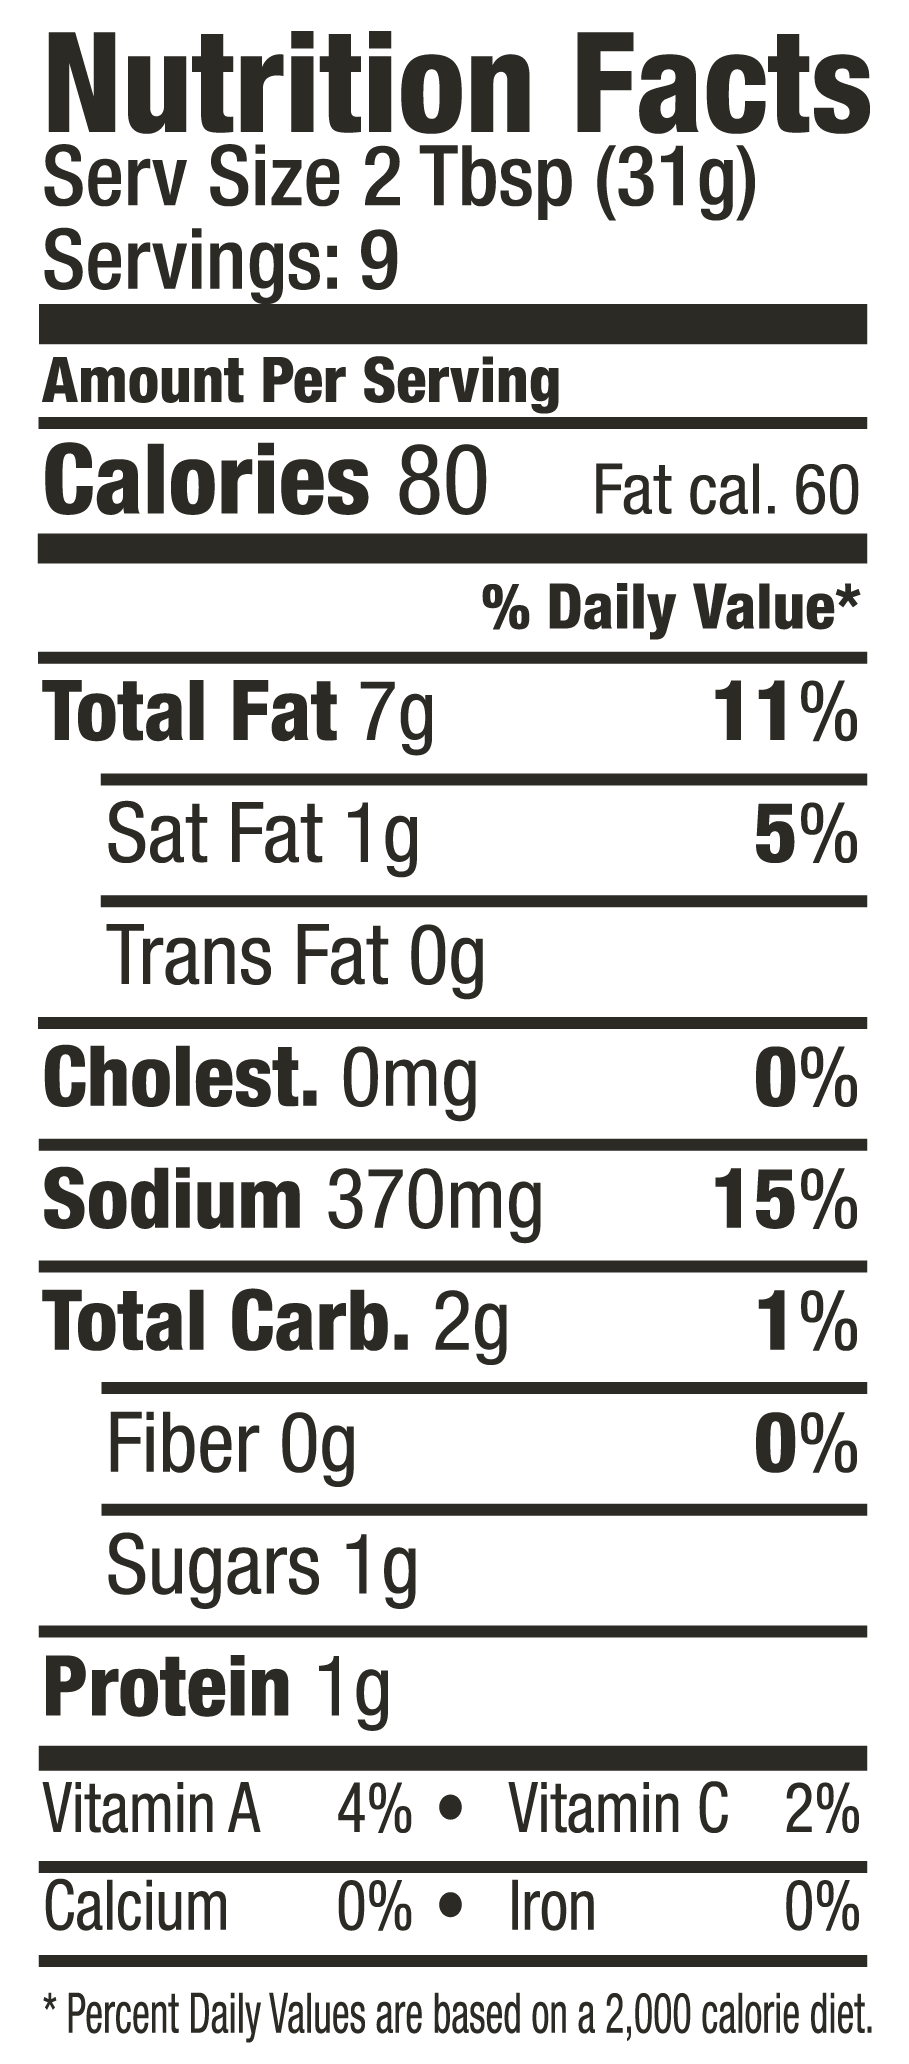 NutritionalFacts_Ginger_2018.png